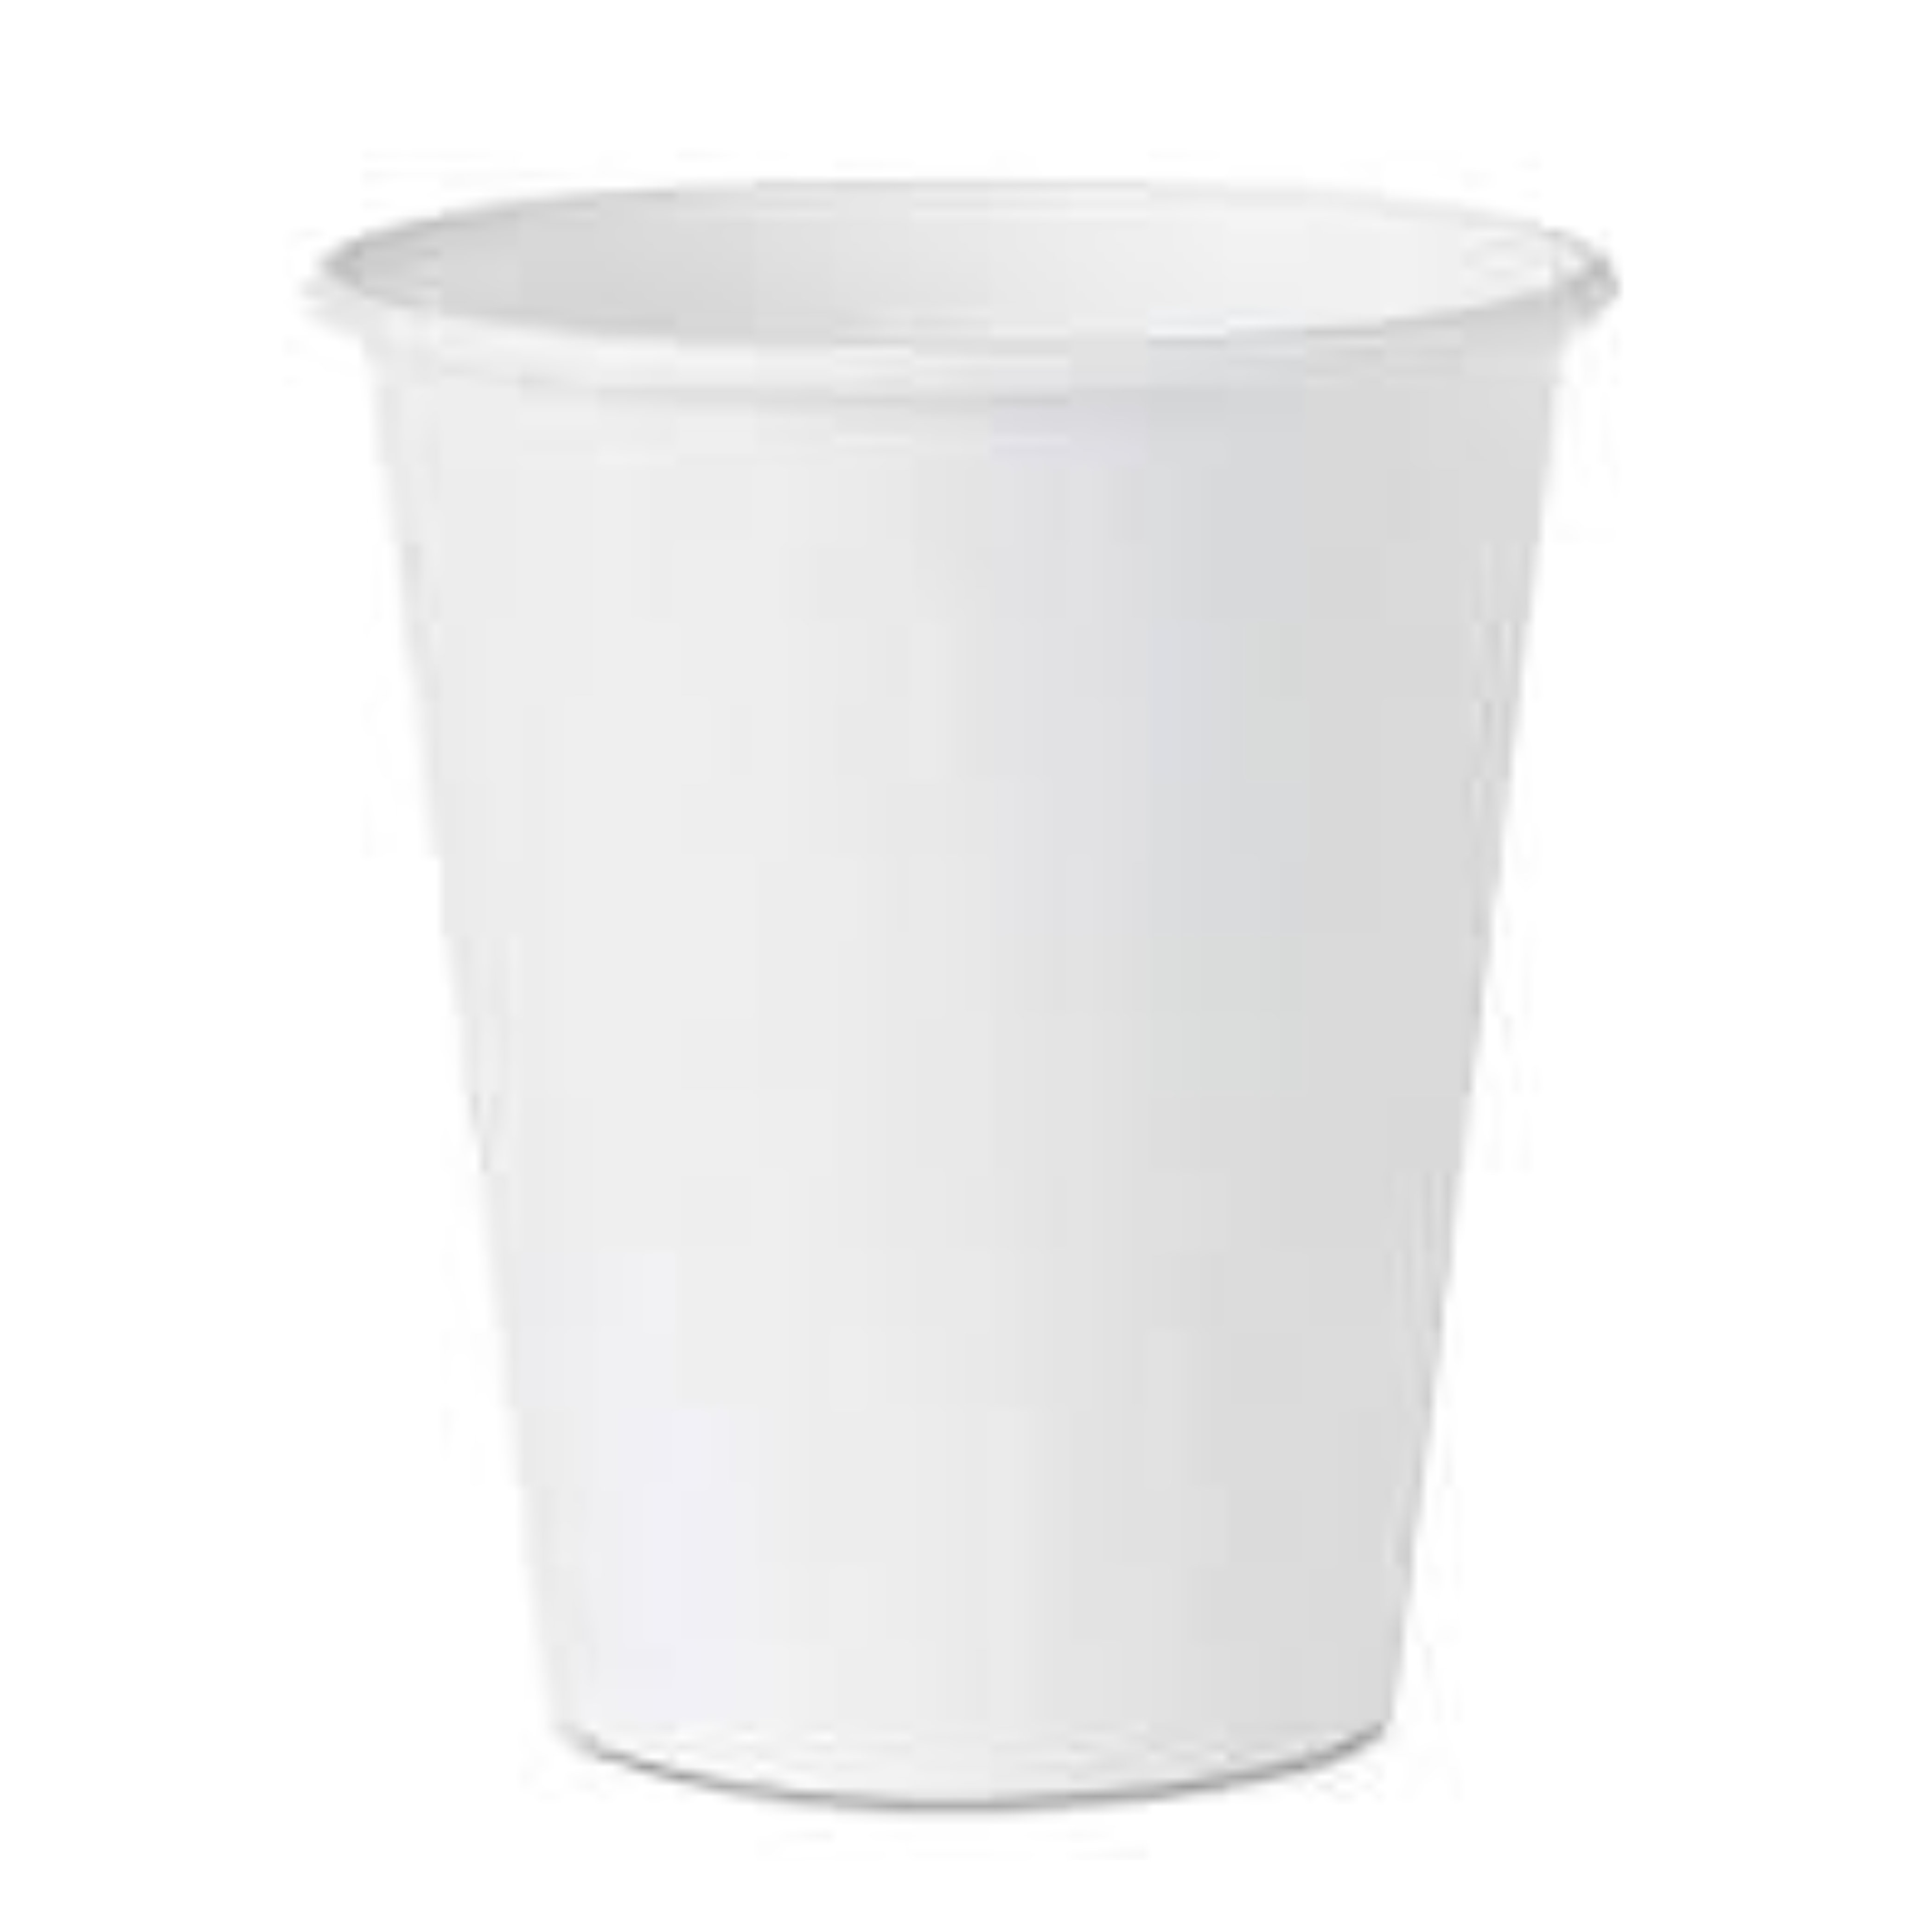 WHITE 6.5OZ CUP SOLD IN A PACK OF 100